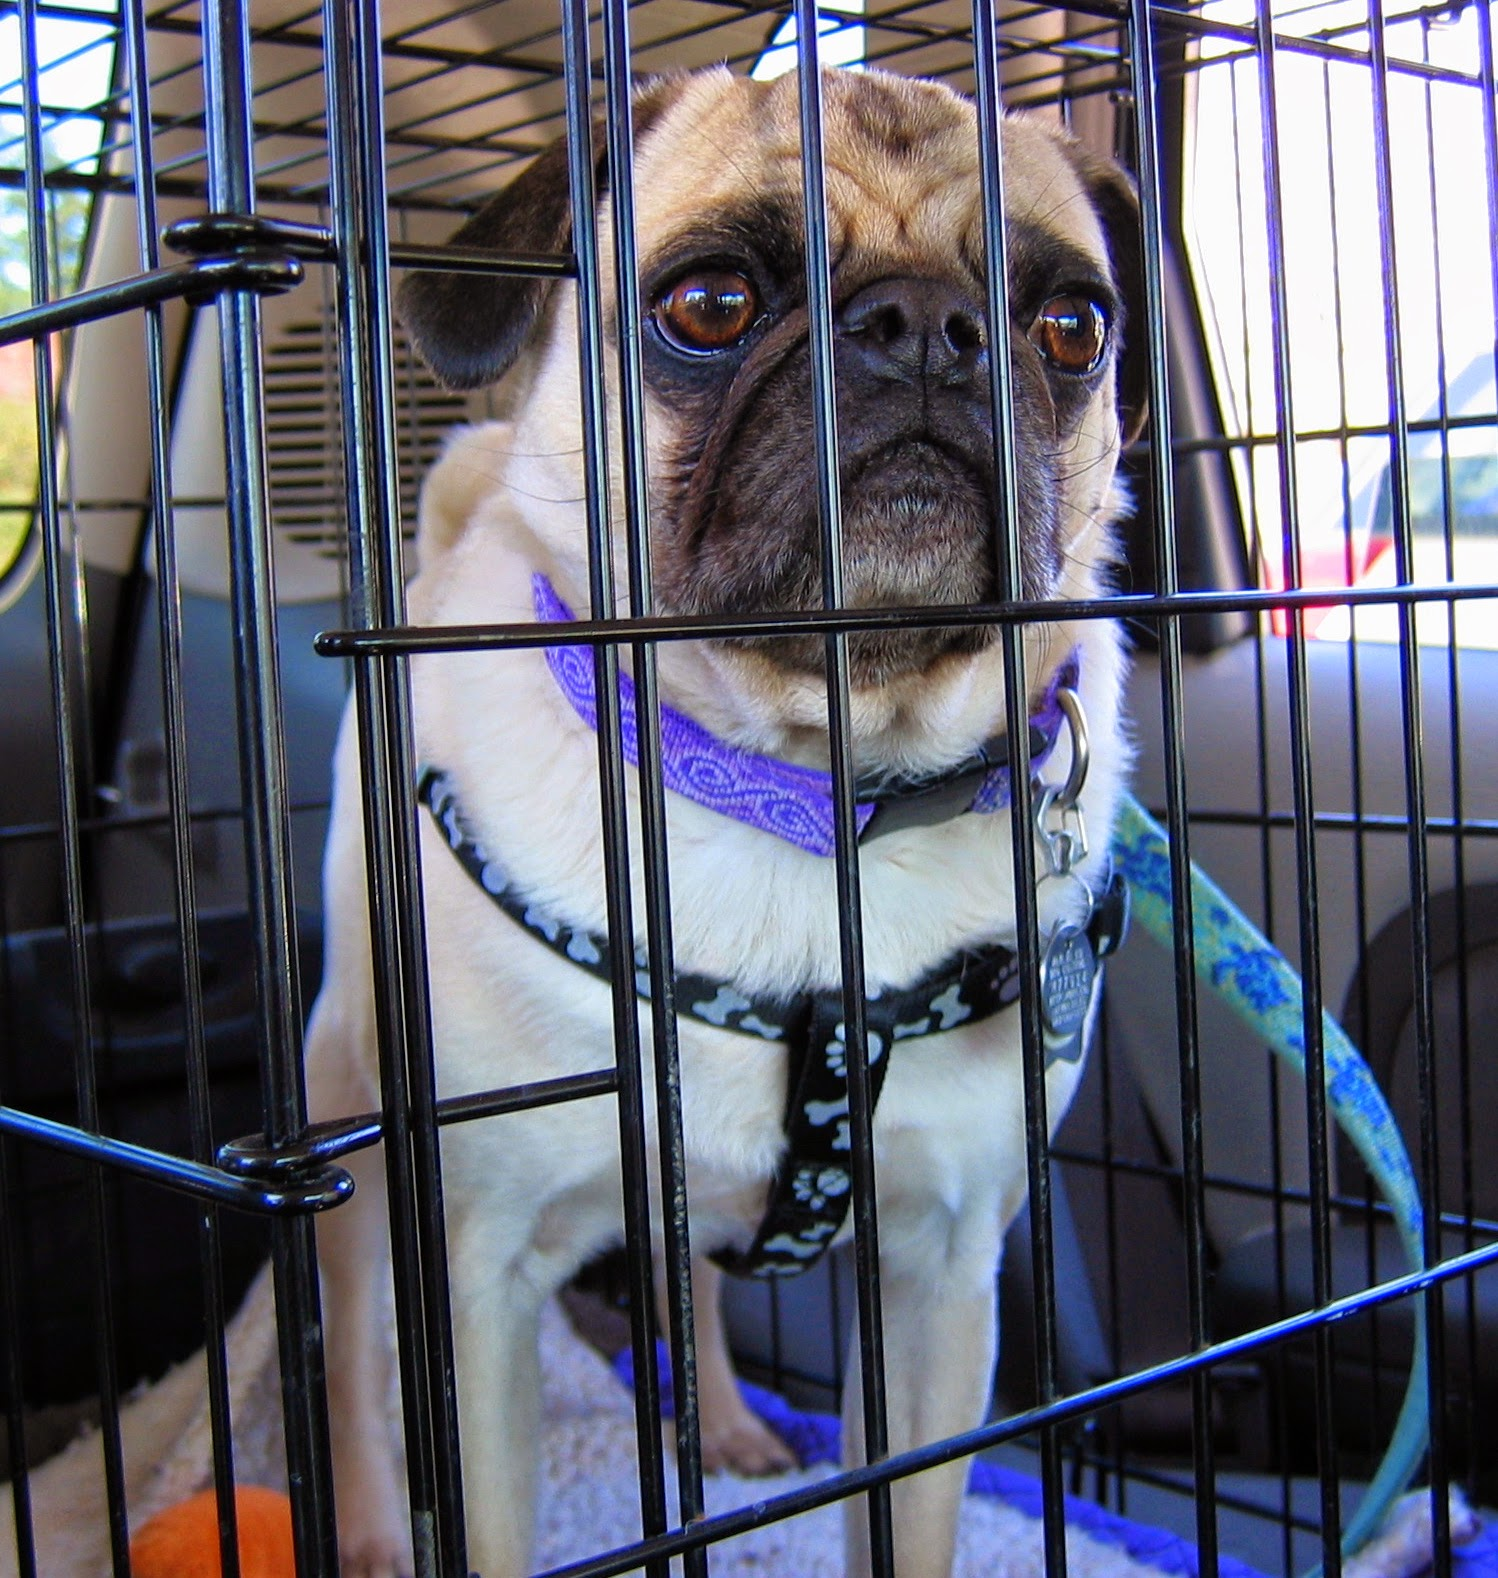 Liam the pug in his kennel